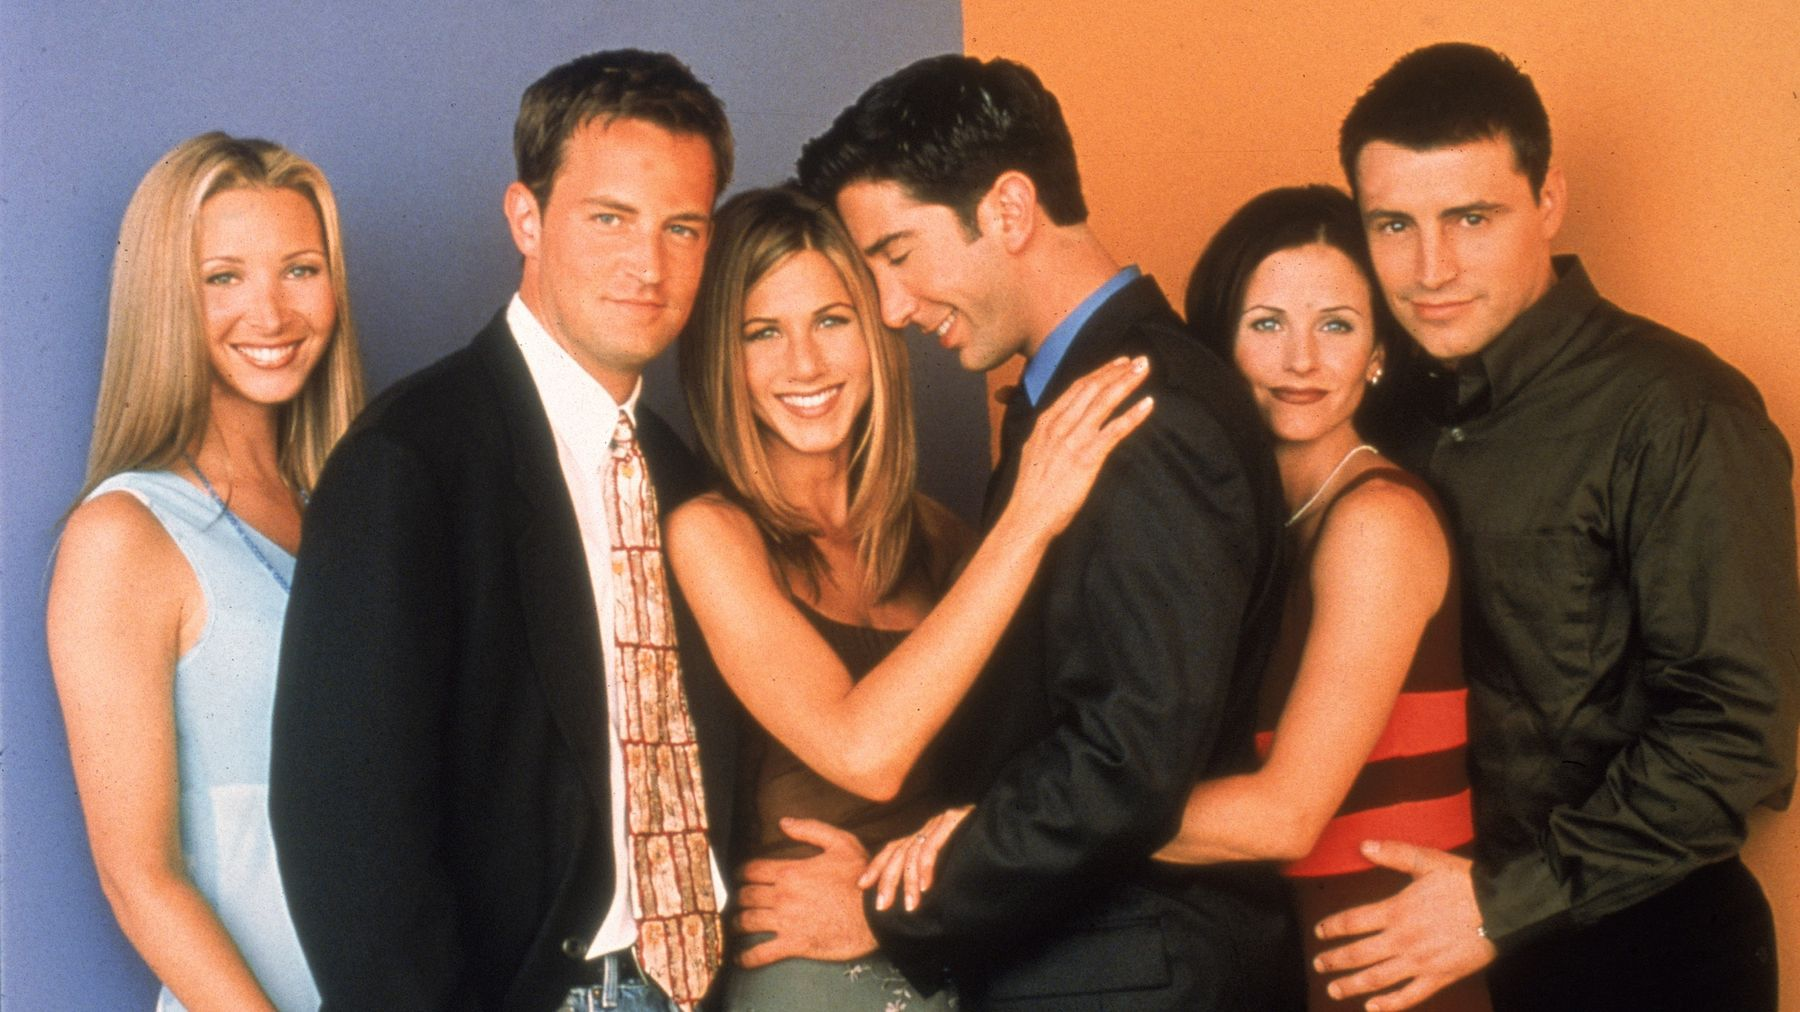 Friends Creator Says That Rachel And Joey Relationship Was